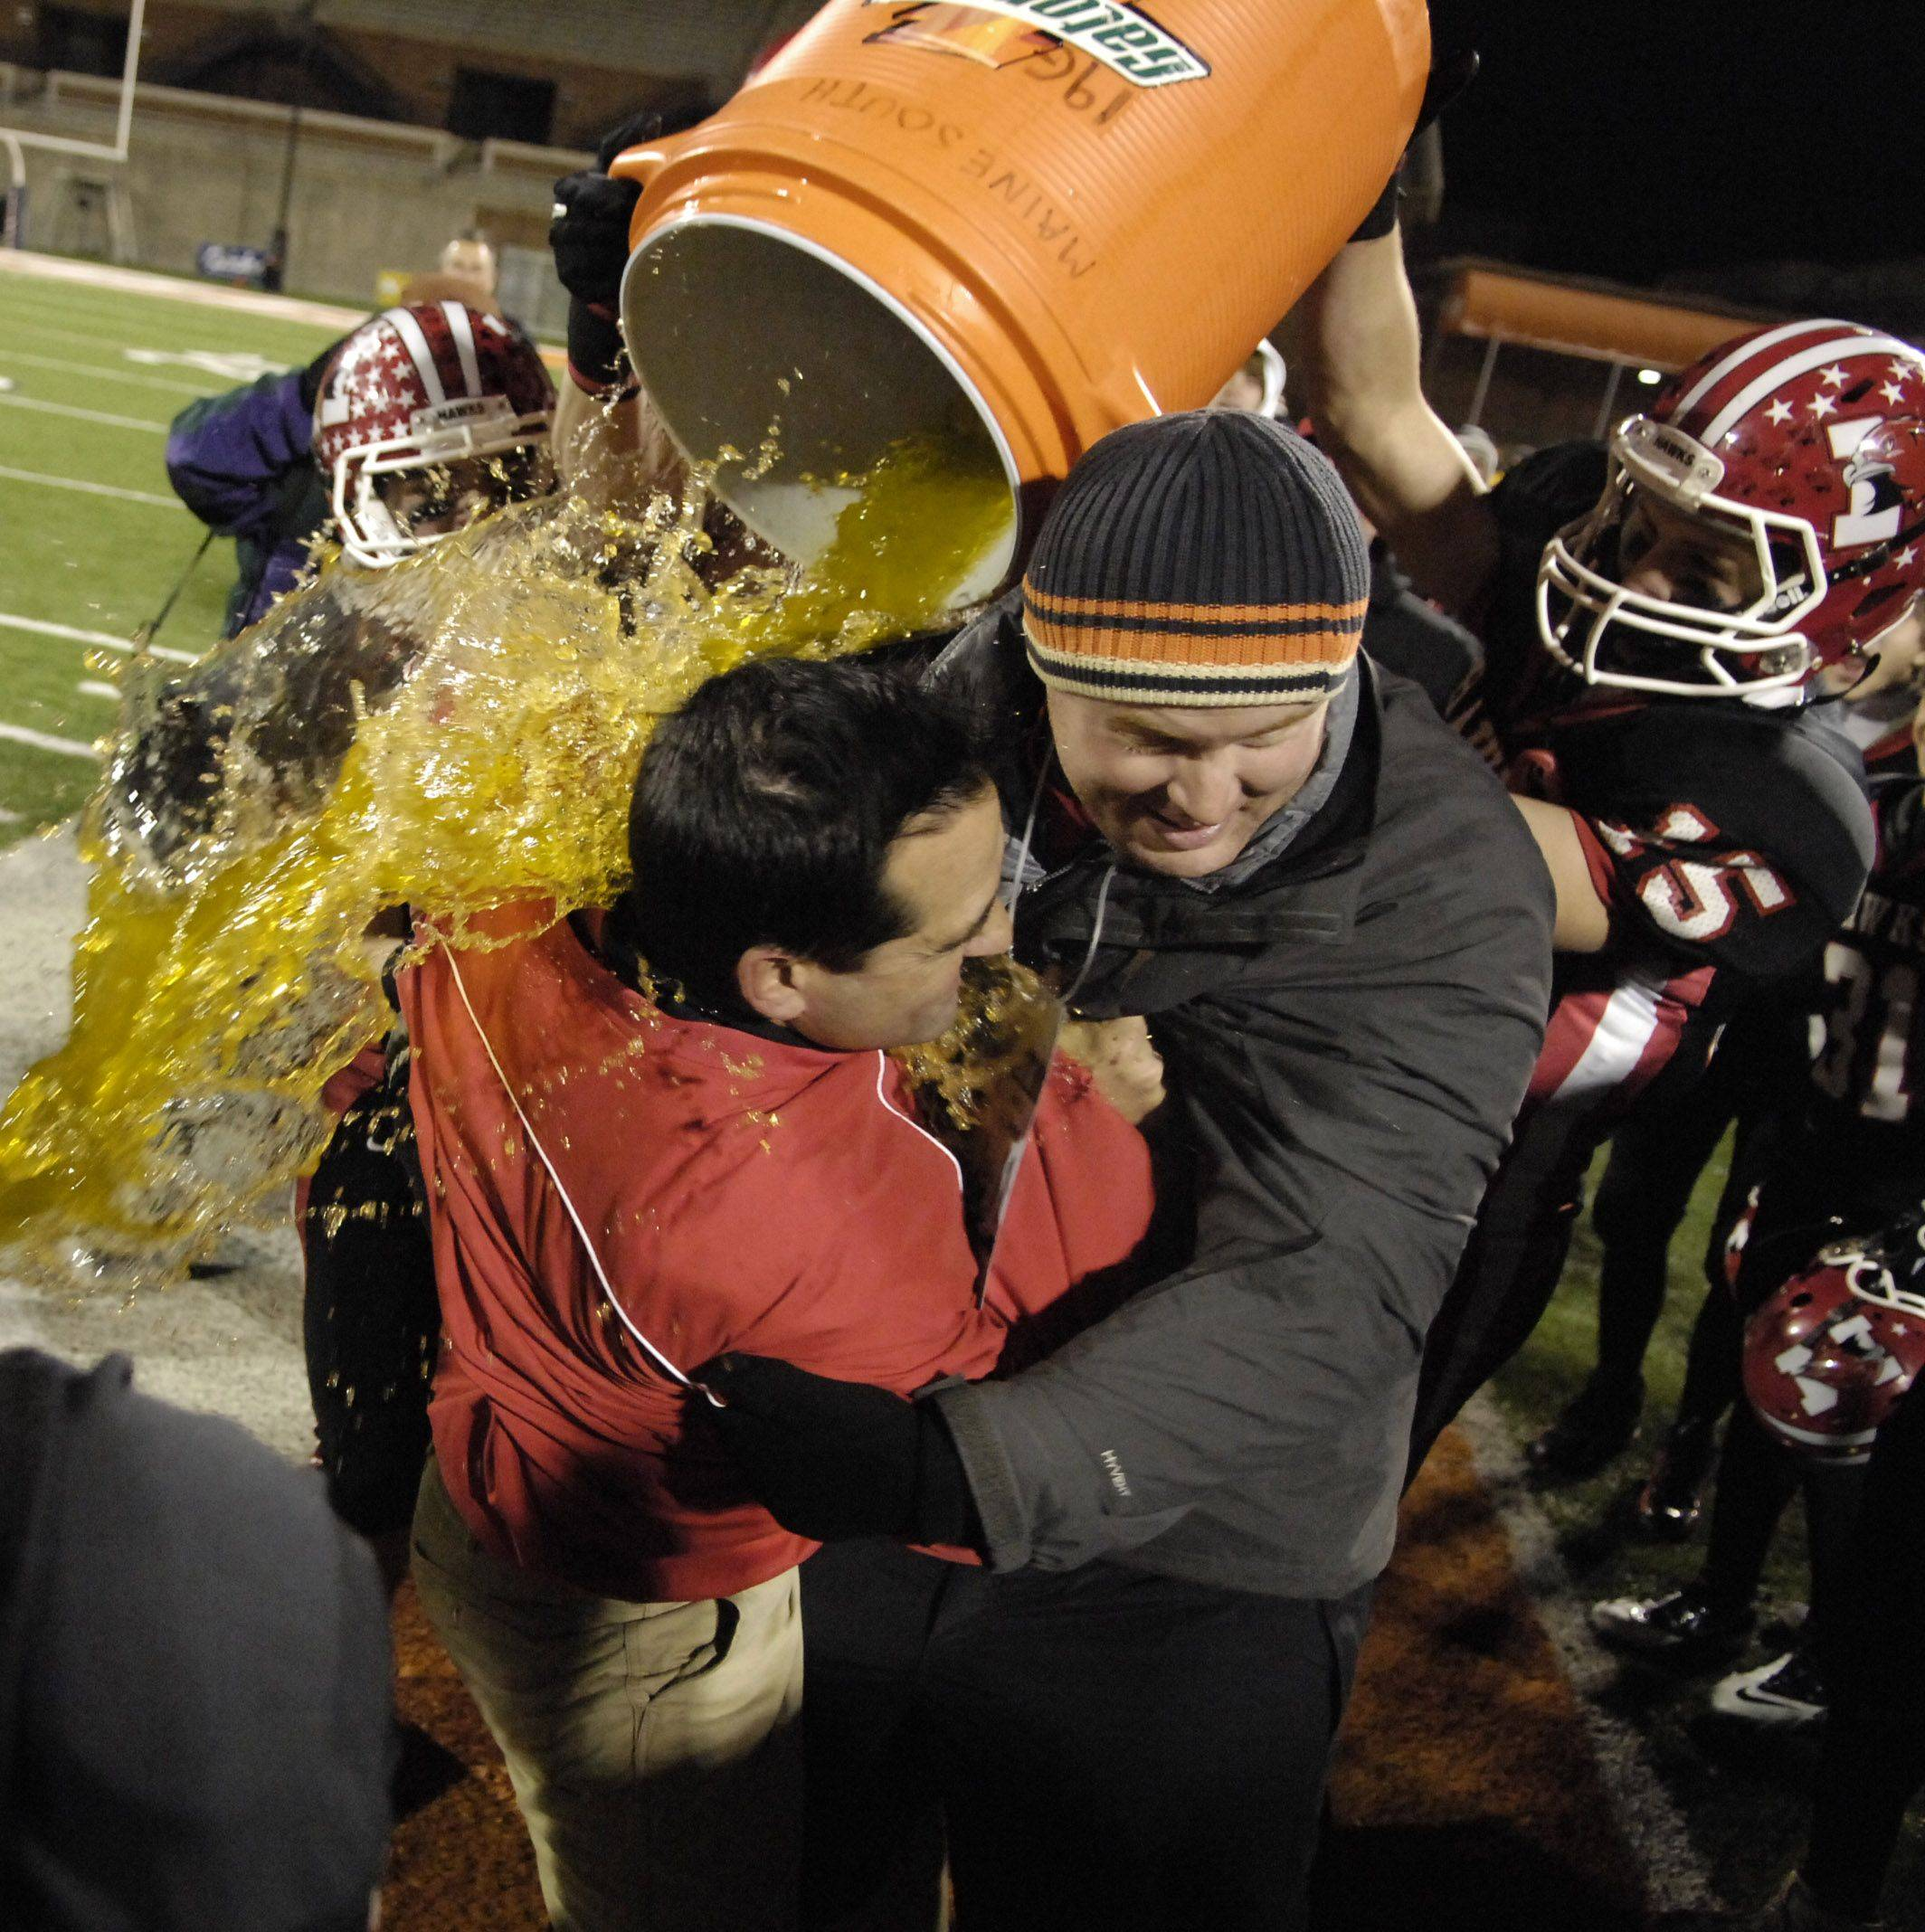 Maine South head coach David Inserra (in red) gets doused with Gatorade as the final seconds tick off the clock in the Hawks win over Mt. Carmel during the Class 8A state final in Champaign Saturday.